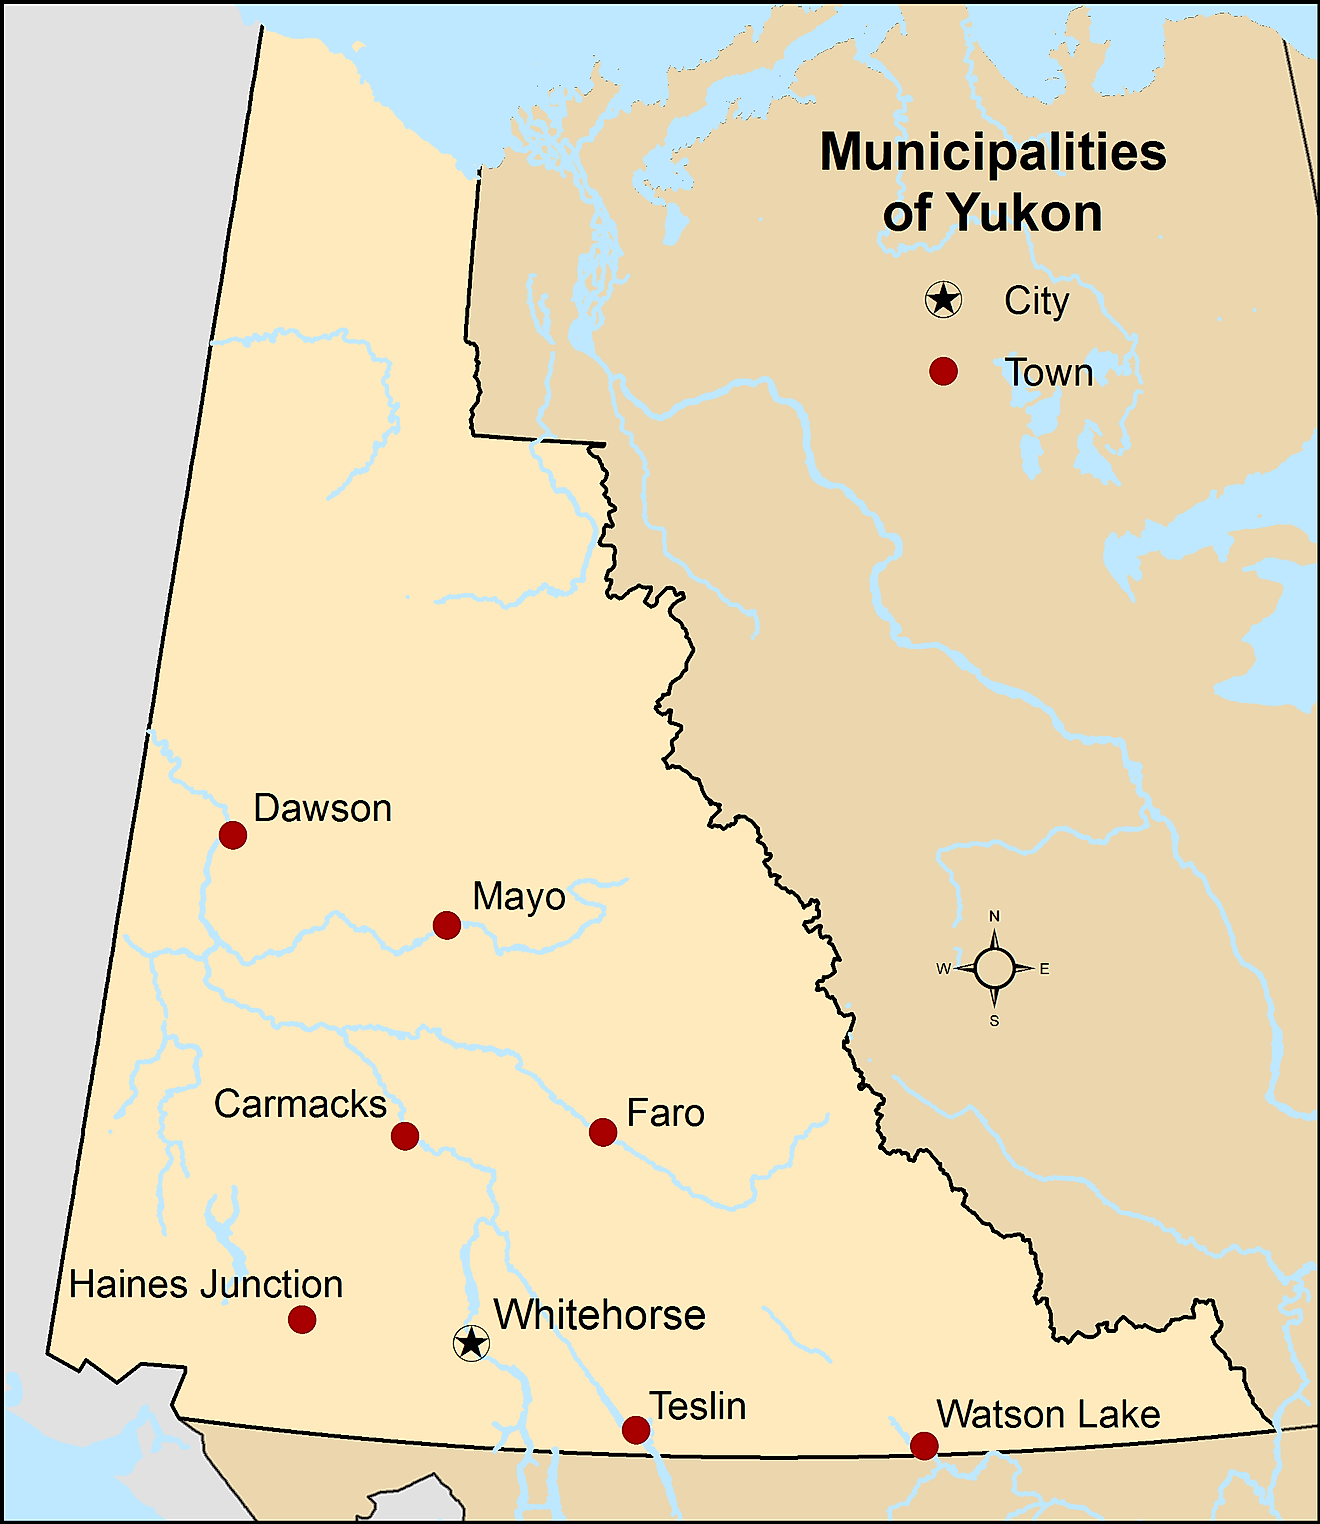 Administrative Map of Yukon showing its municipalities and its capital city - Whitehorse. Image credit: Hwy43/Wikimedia.com